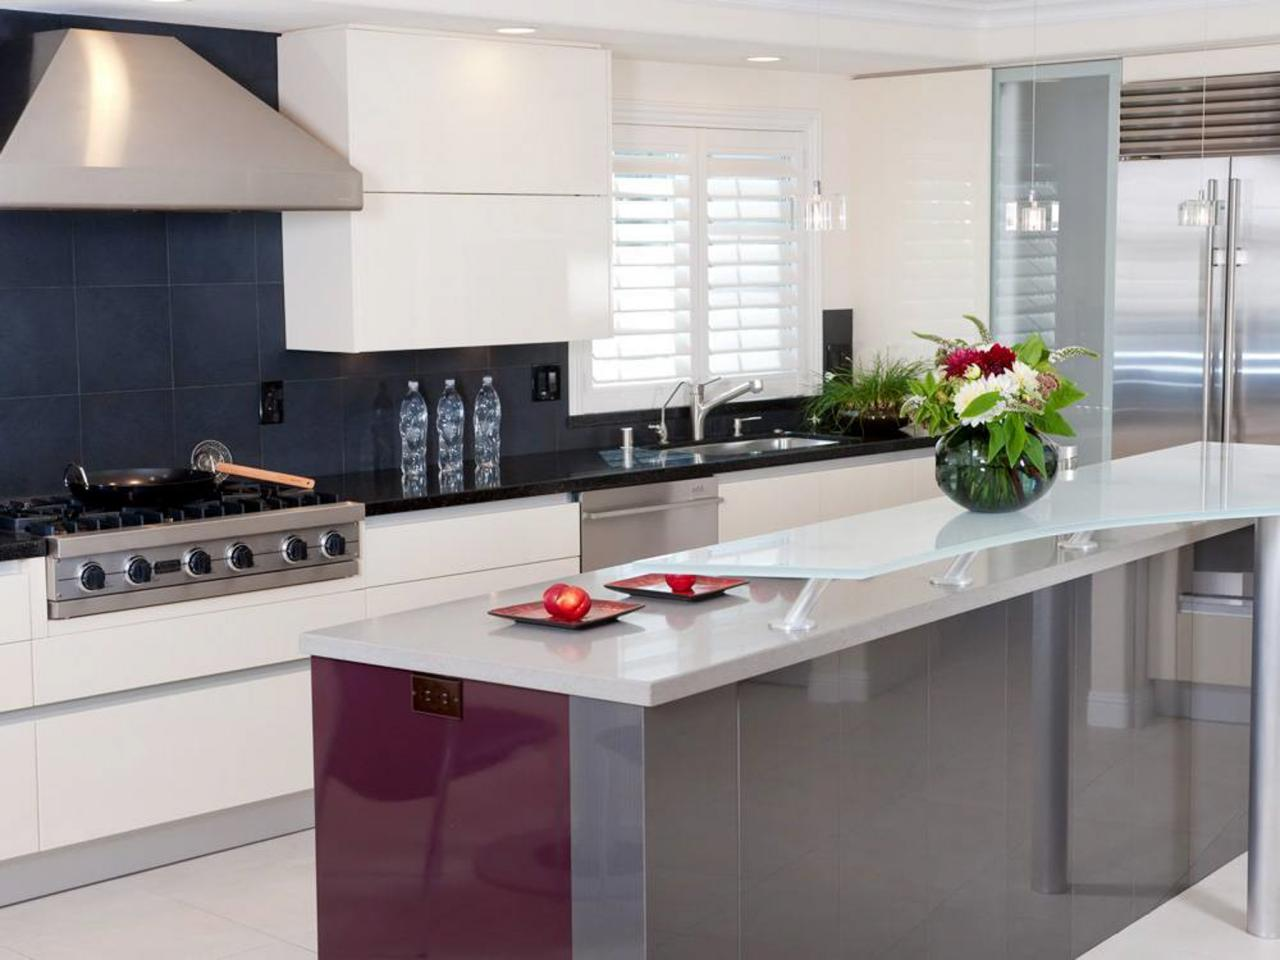 modern kitchen design - Modern Kitchen Design Ideas